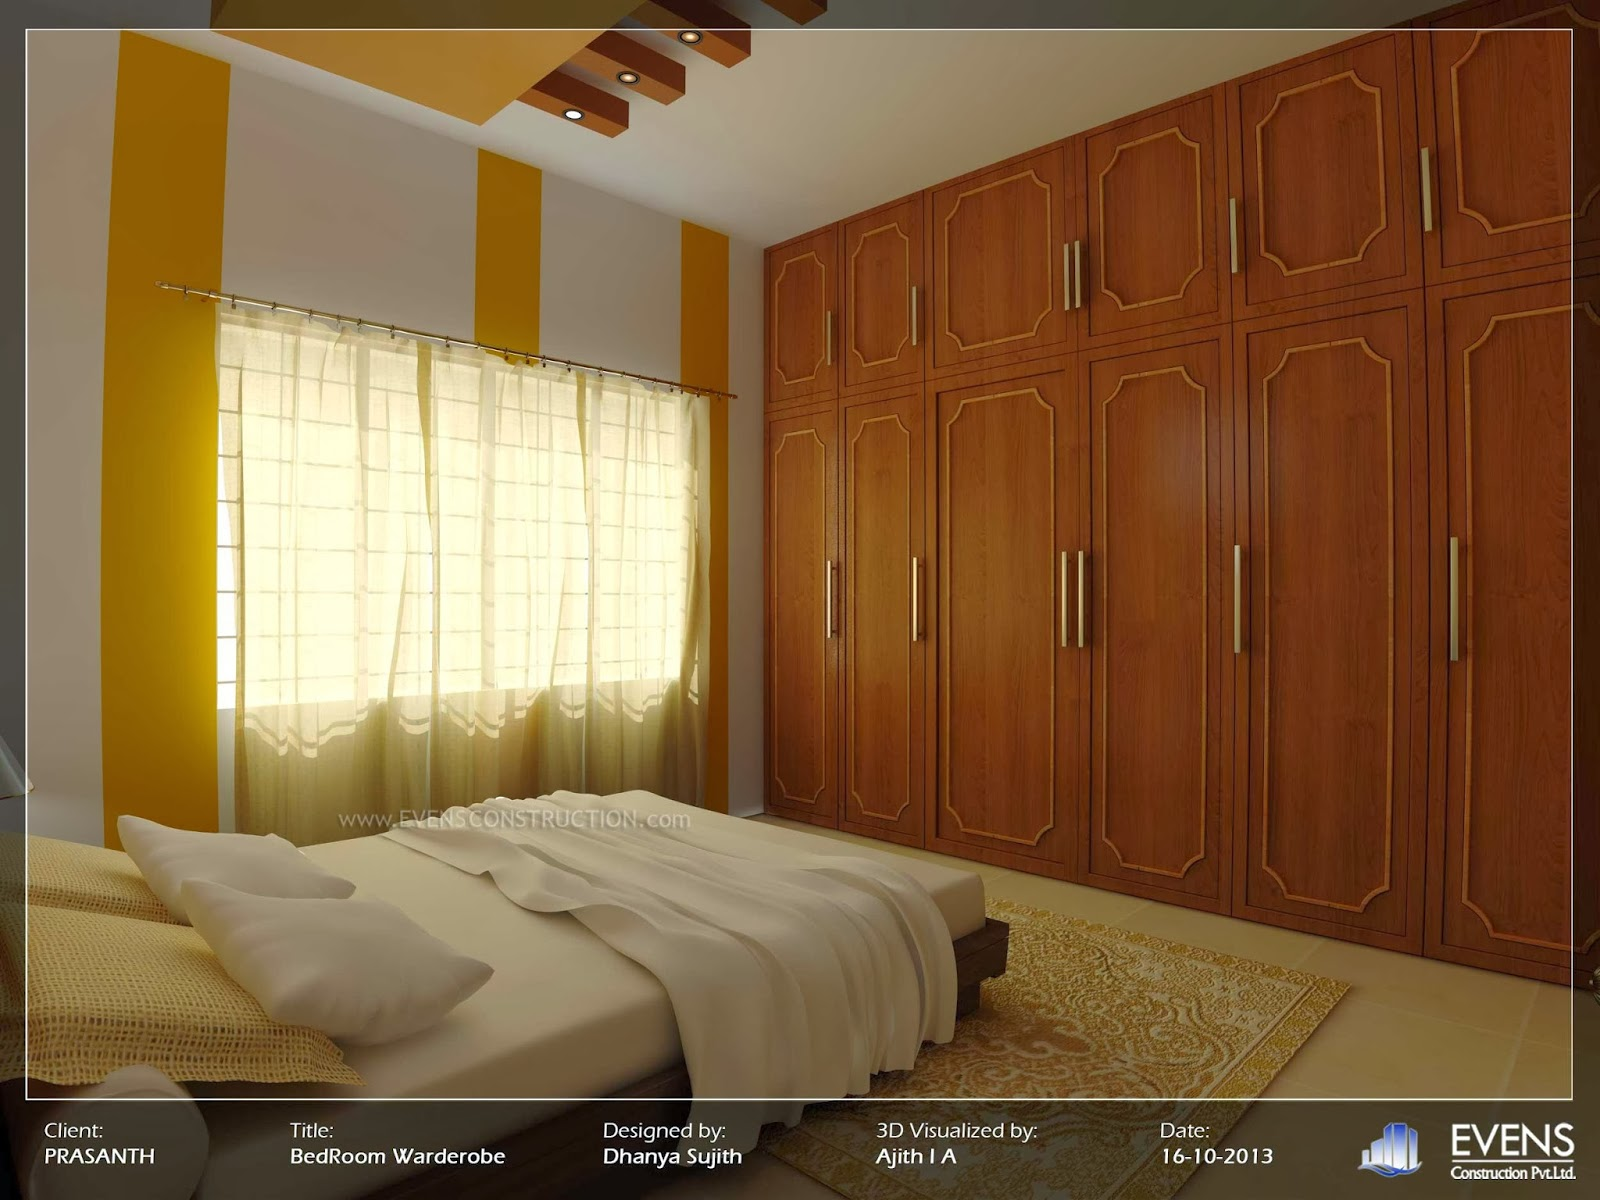 Bathroom Designs Kerala Style evens construction pvt ltd: kerala style bedroom wardrobe